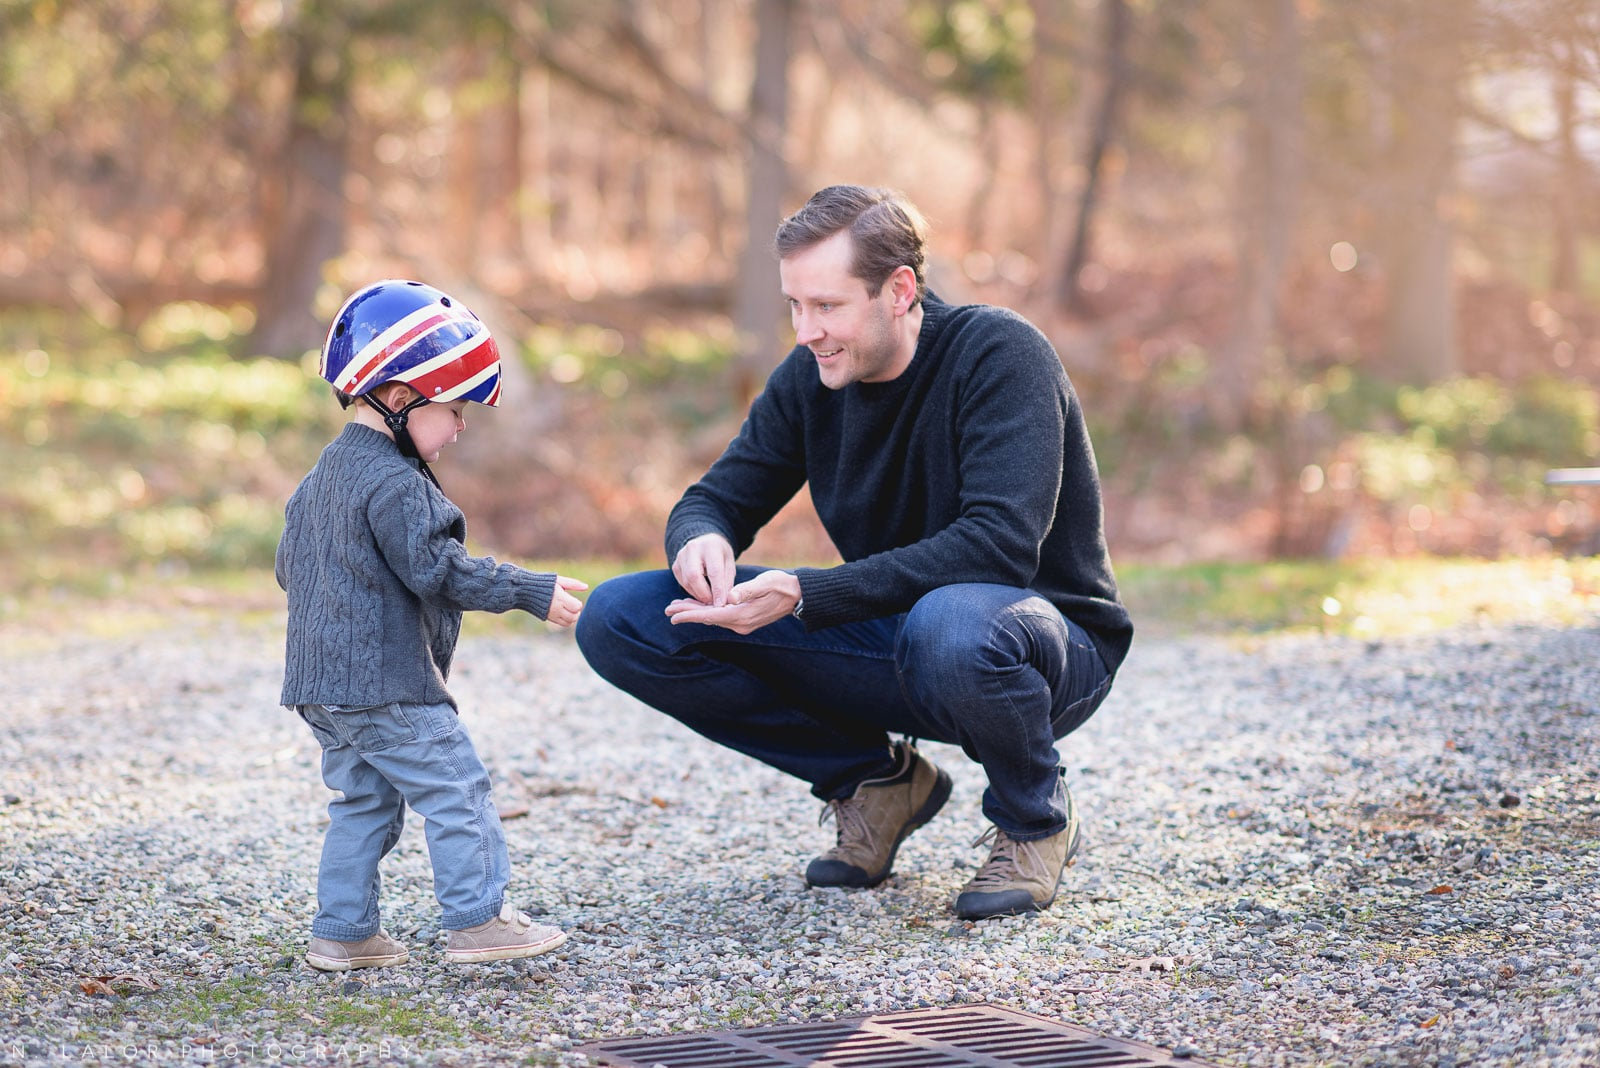 Dad spending outdoor time with his toddler son. Portrait by N. Lalor Photography.